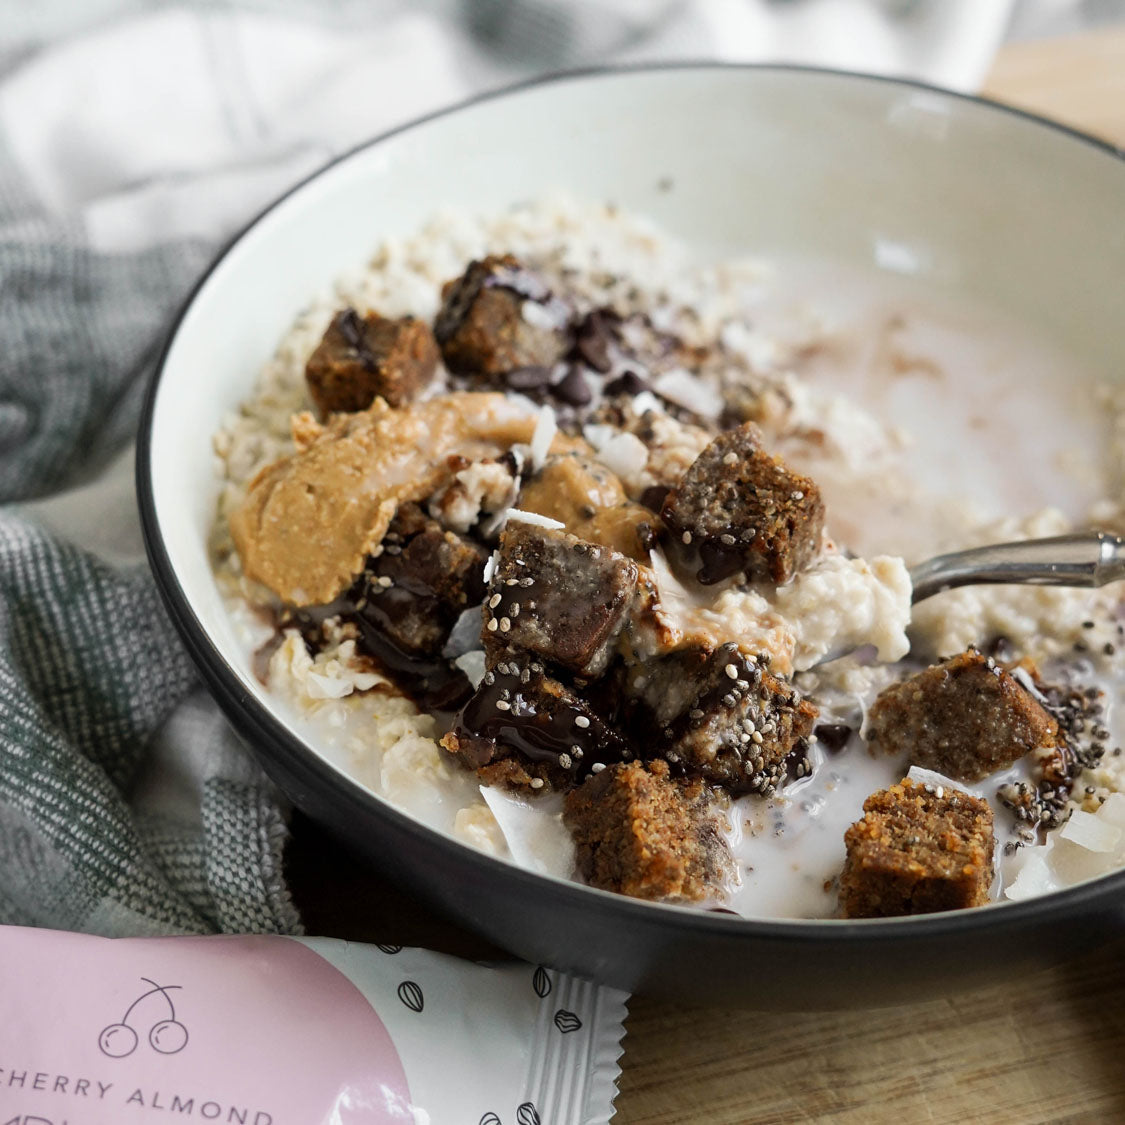 Chocolate Chia Hot Oats